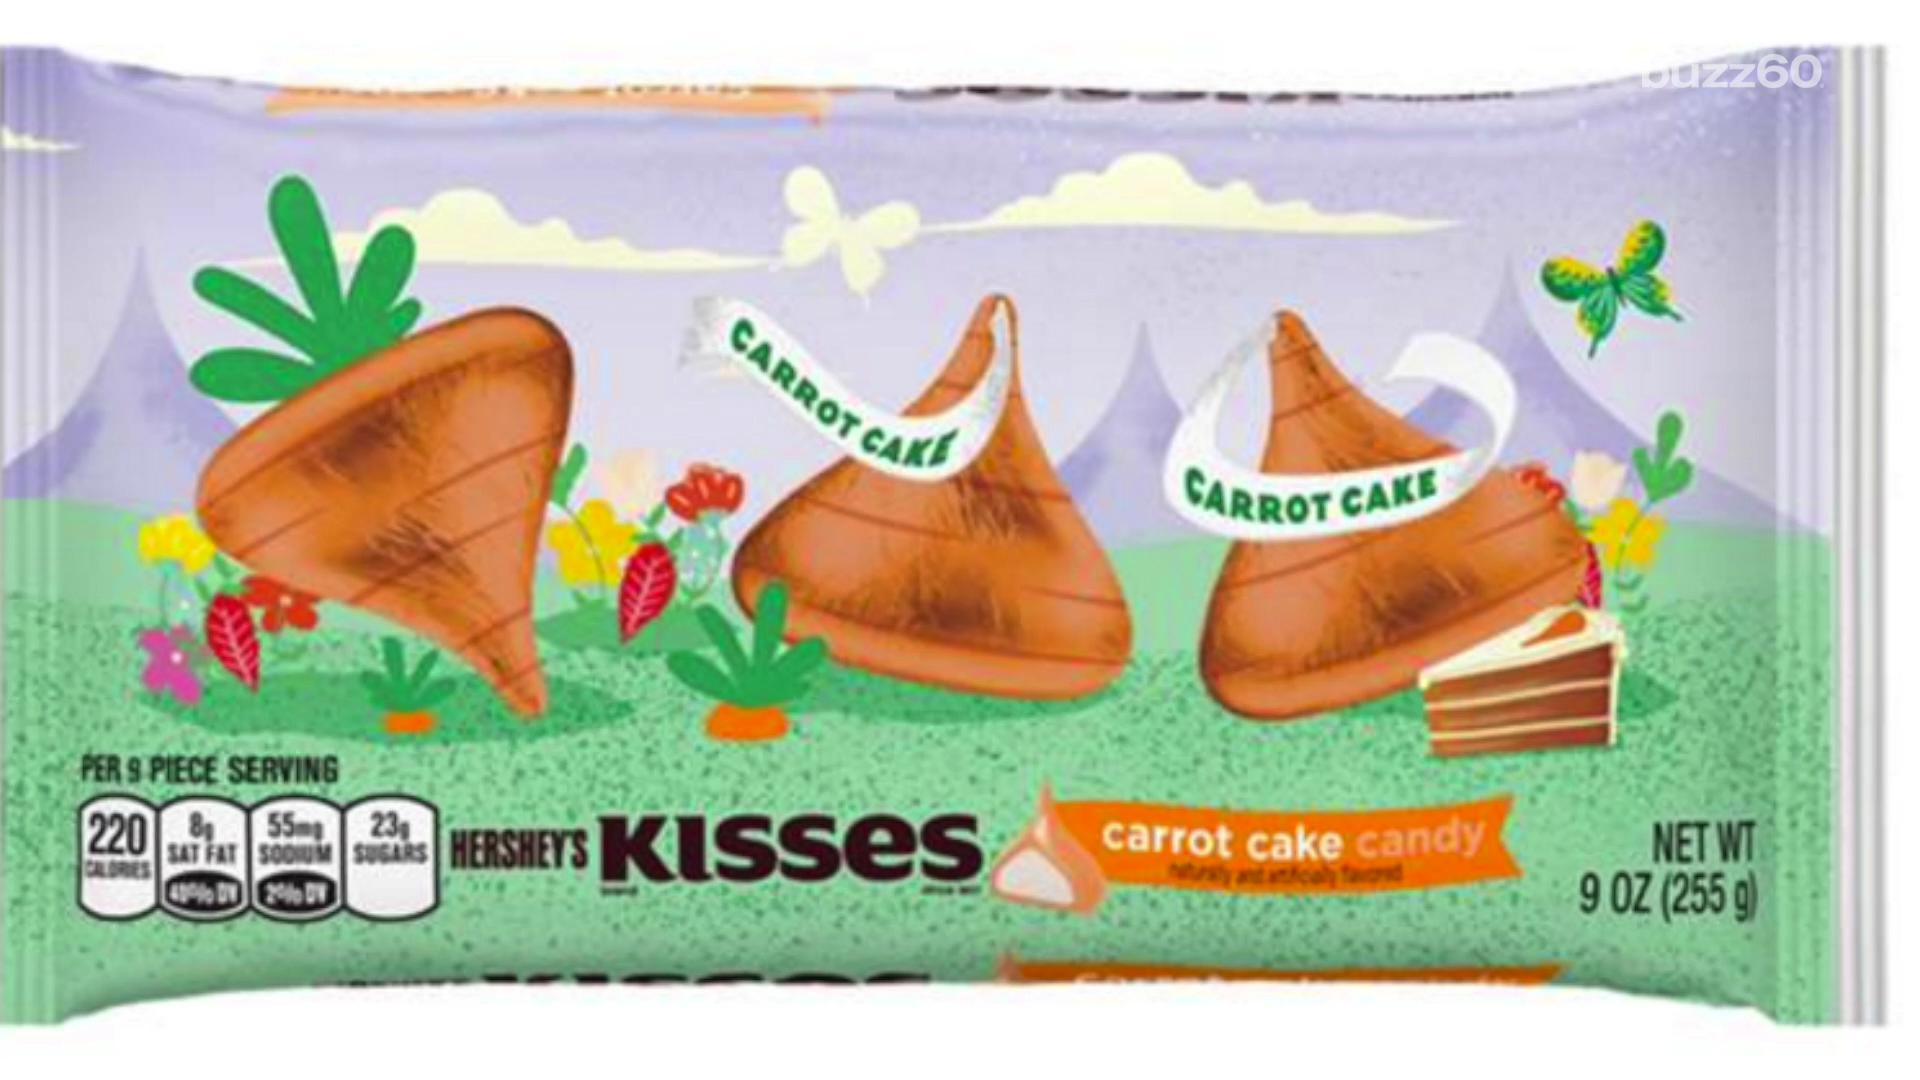 Hershey's Unveil Carrot Cake Flavored Kisses